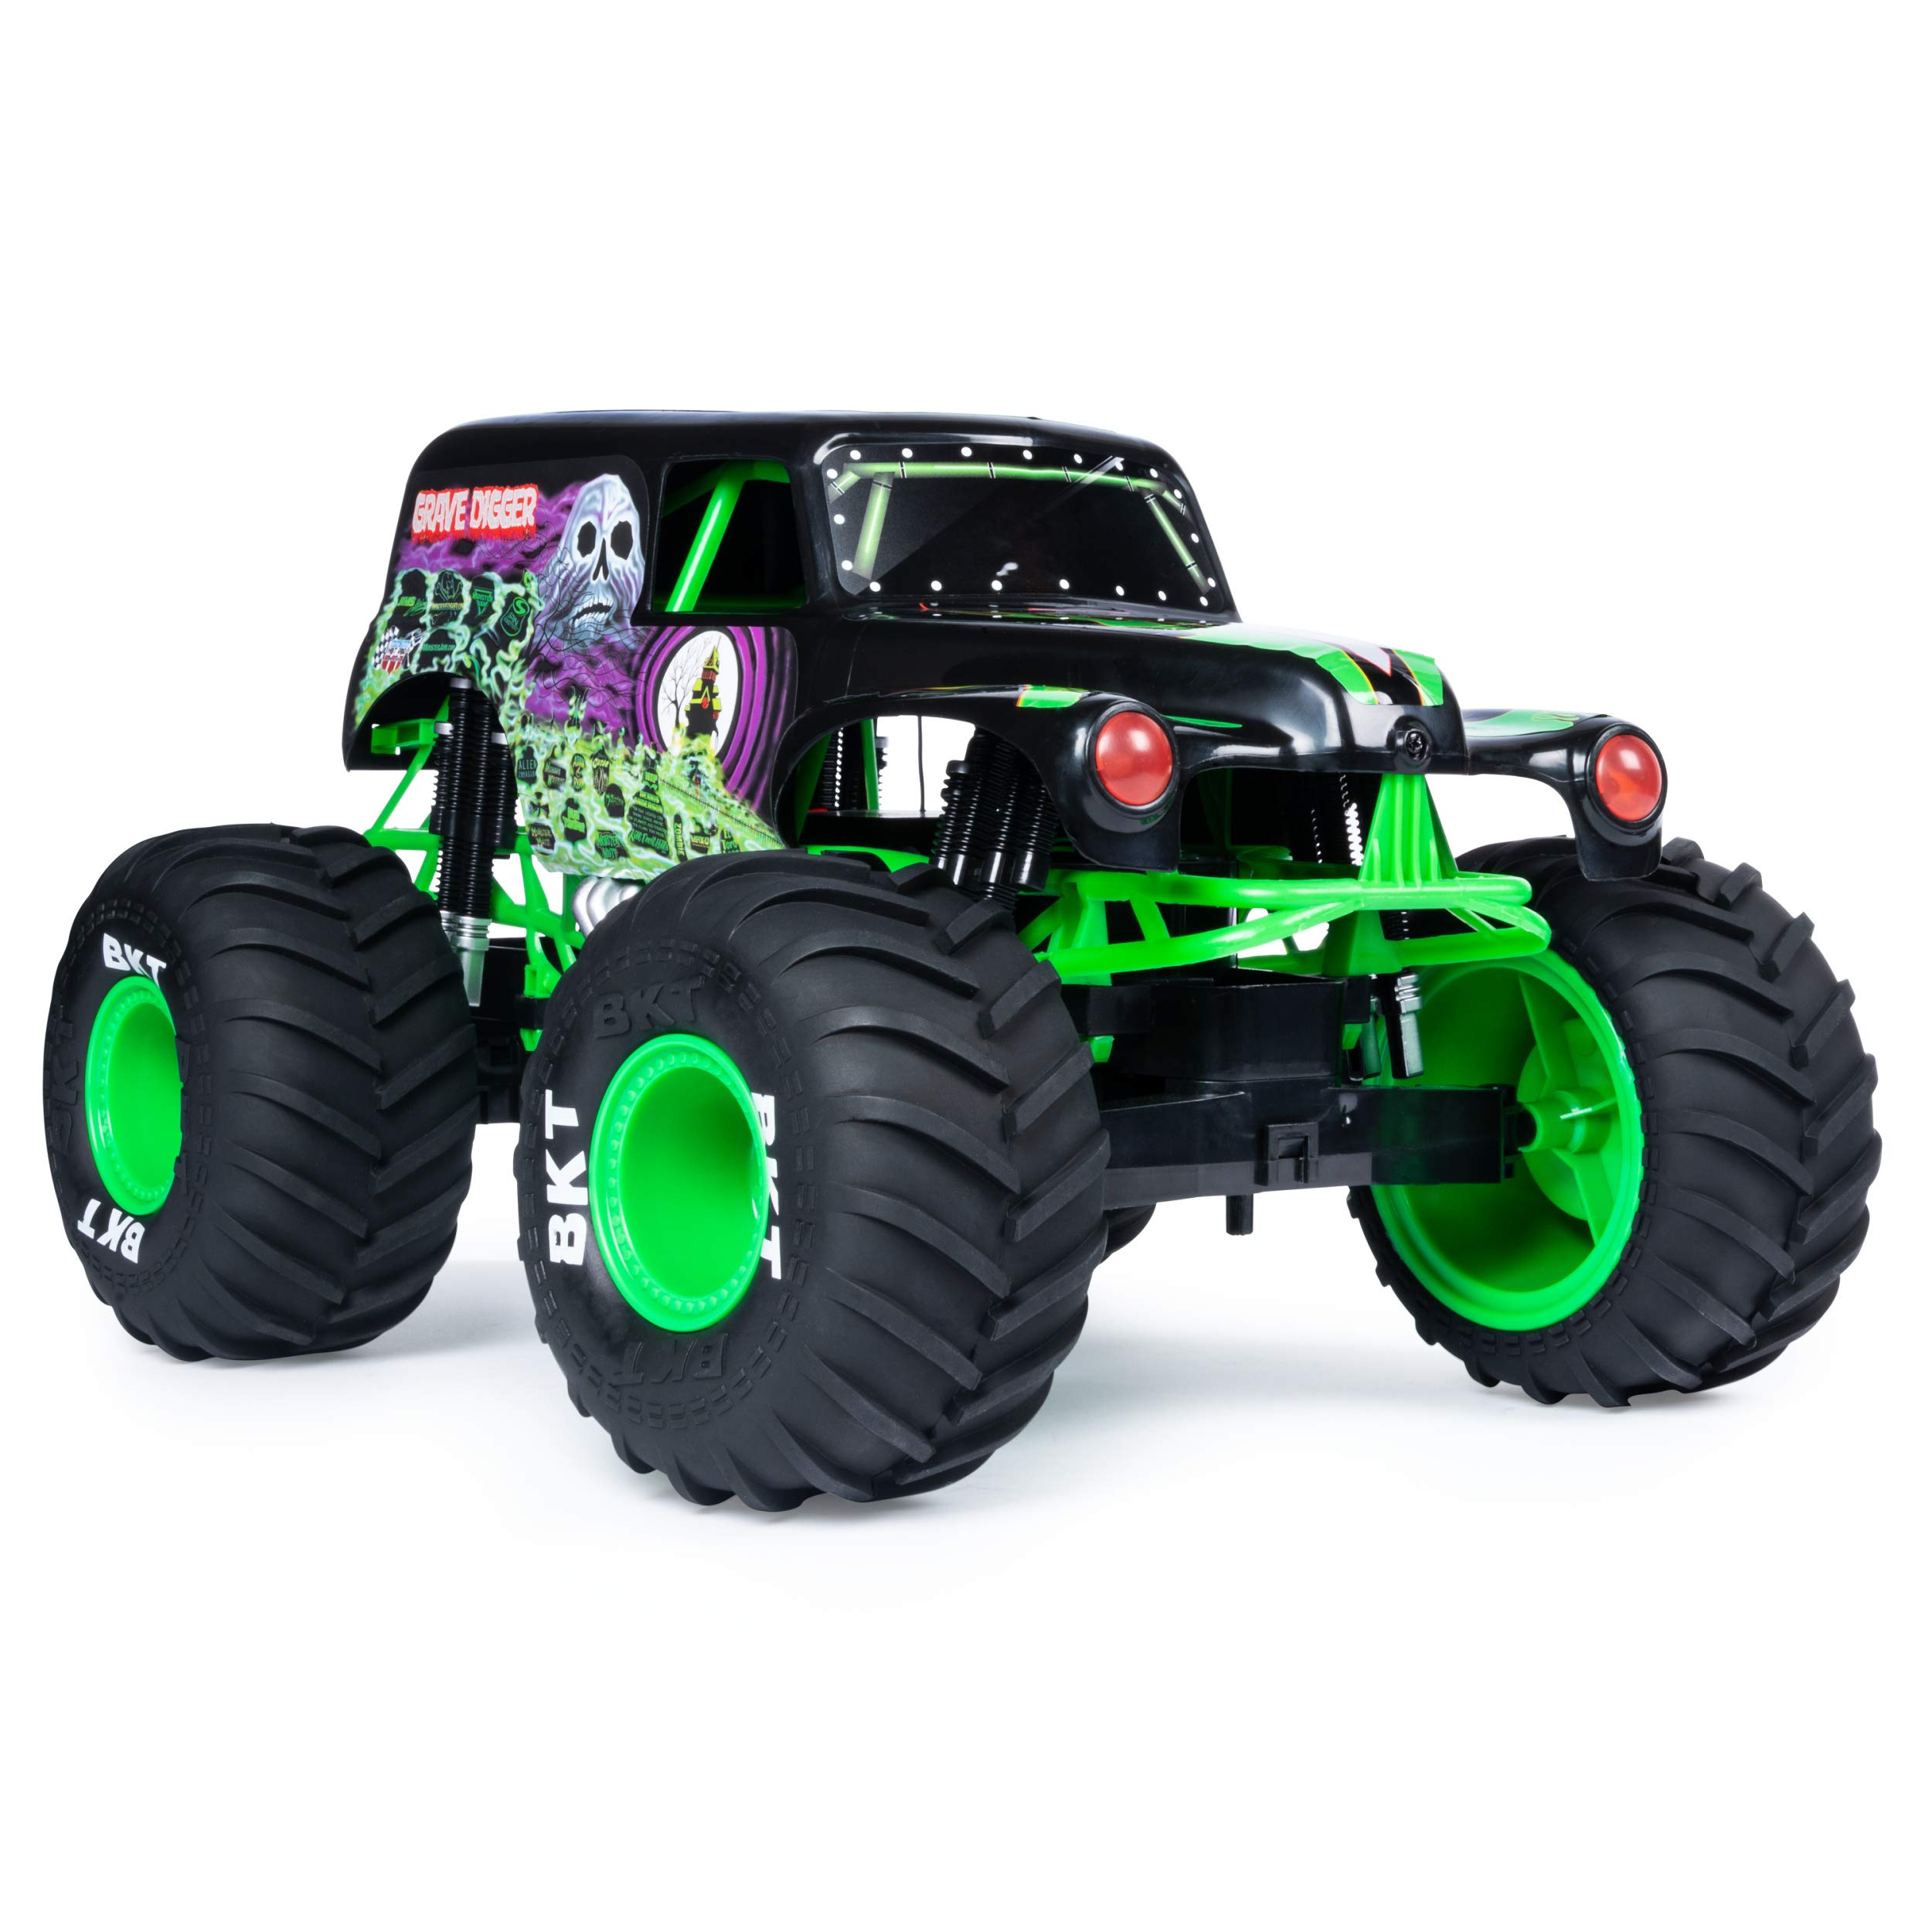 Monster Jam Official Grave Digger Rc Truck 1: 10 Scale with Lights & Sounds For Ages 4 & Up by Monster Jam (Image #4)